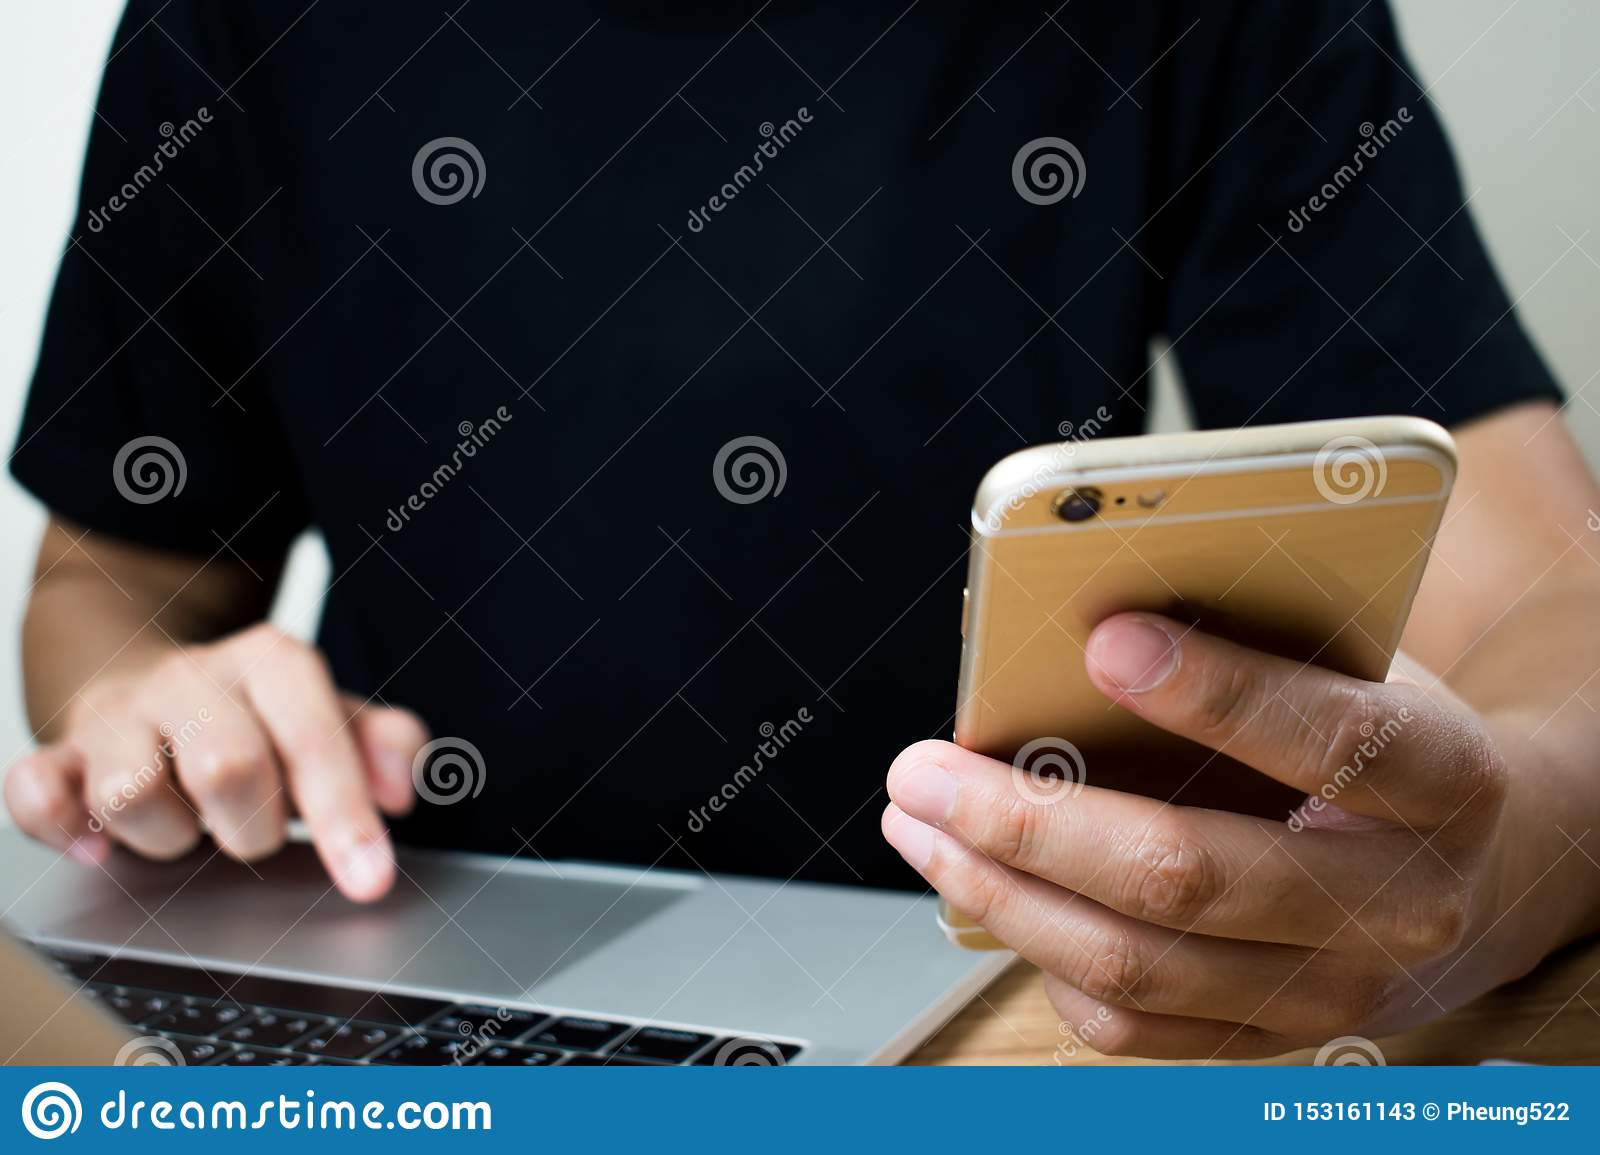 Online shopping concept. The hands of people are using mobile phones and laptop computers to compare something on the table